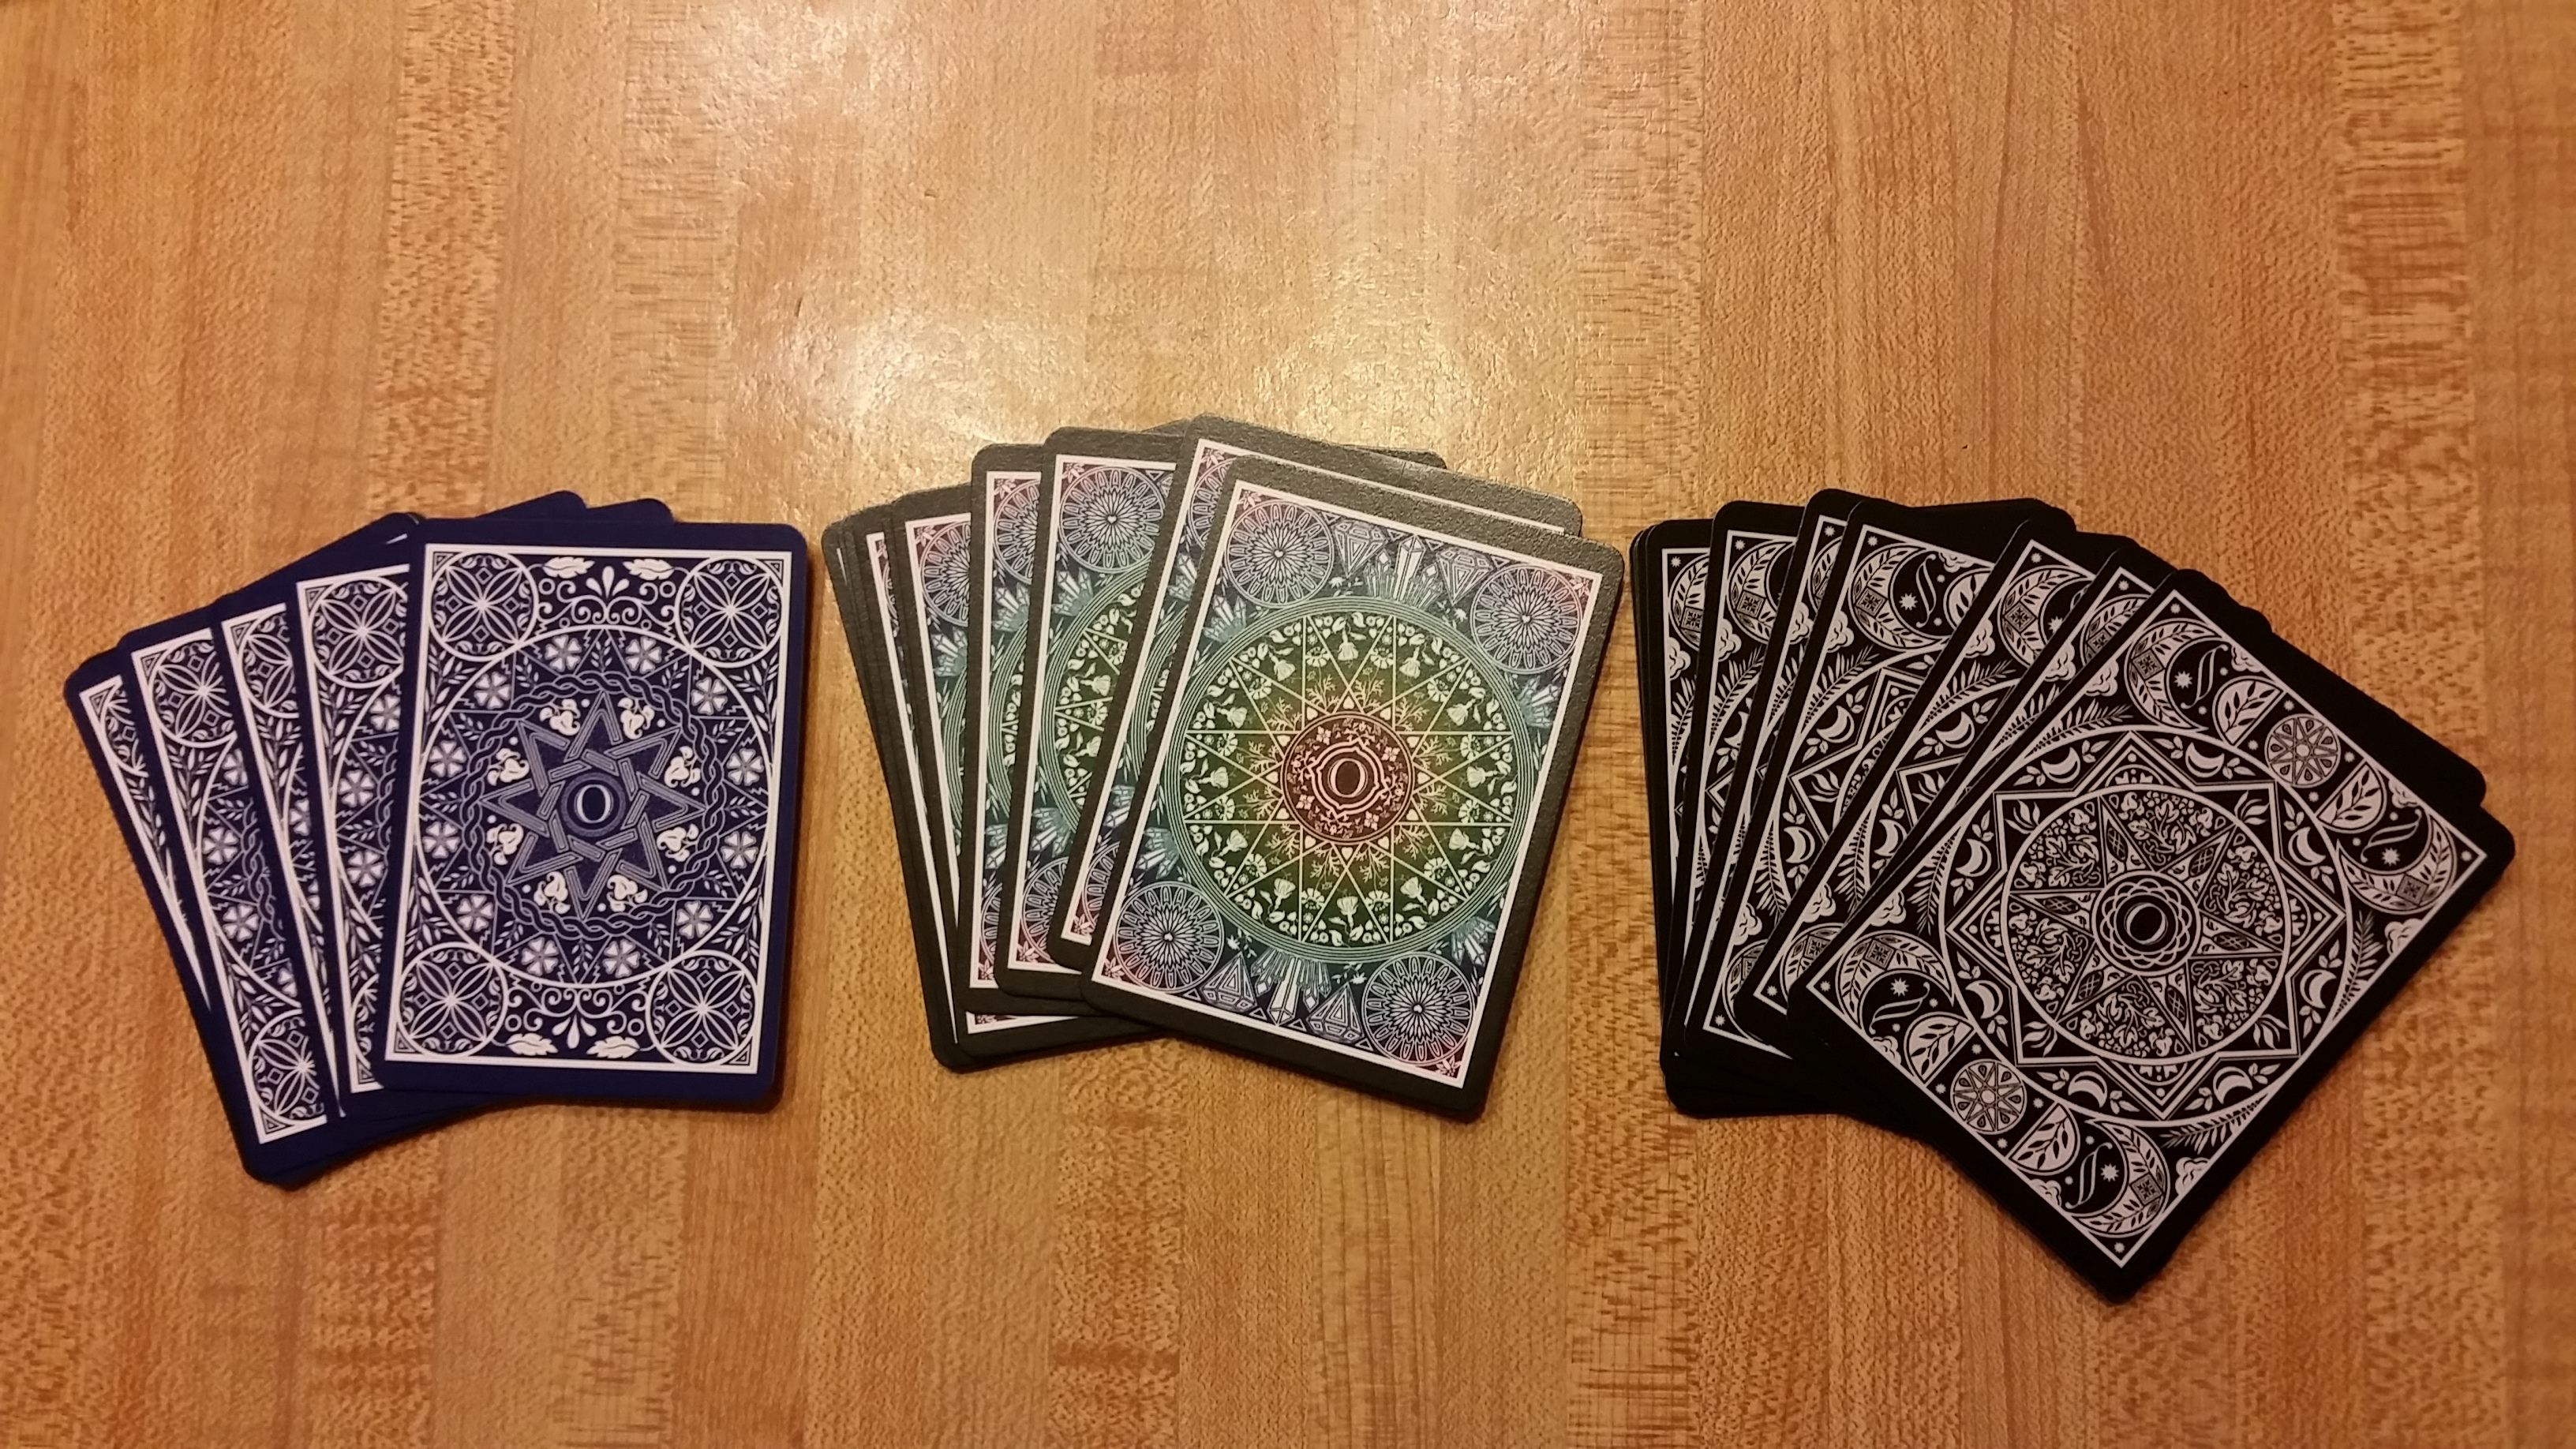 Overleaf Playing Card Club